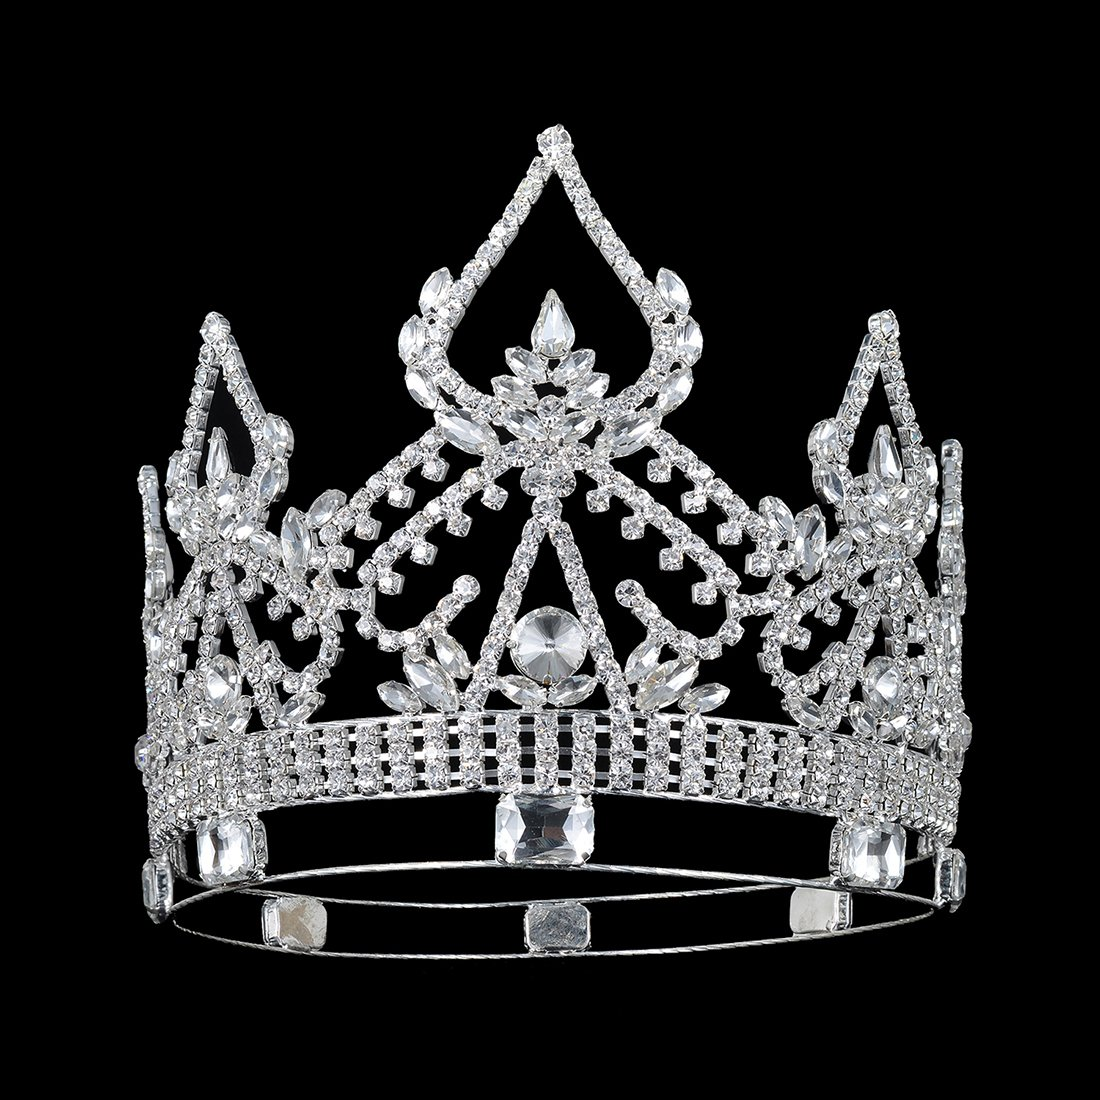 DcZeRong Women Crowns Queen Crowns For Women Prom Pageant Party Rhinestone Crystal Full Crowns by DcZeRong (Image #3)